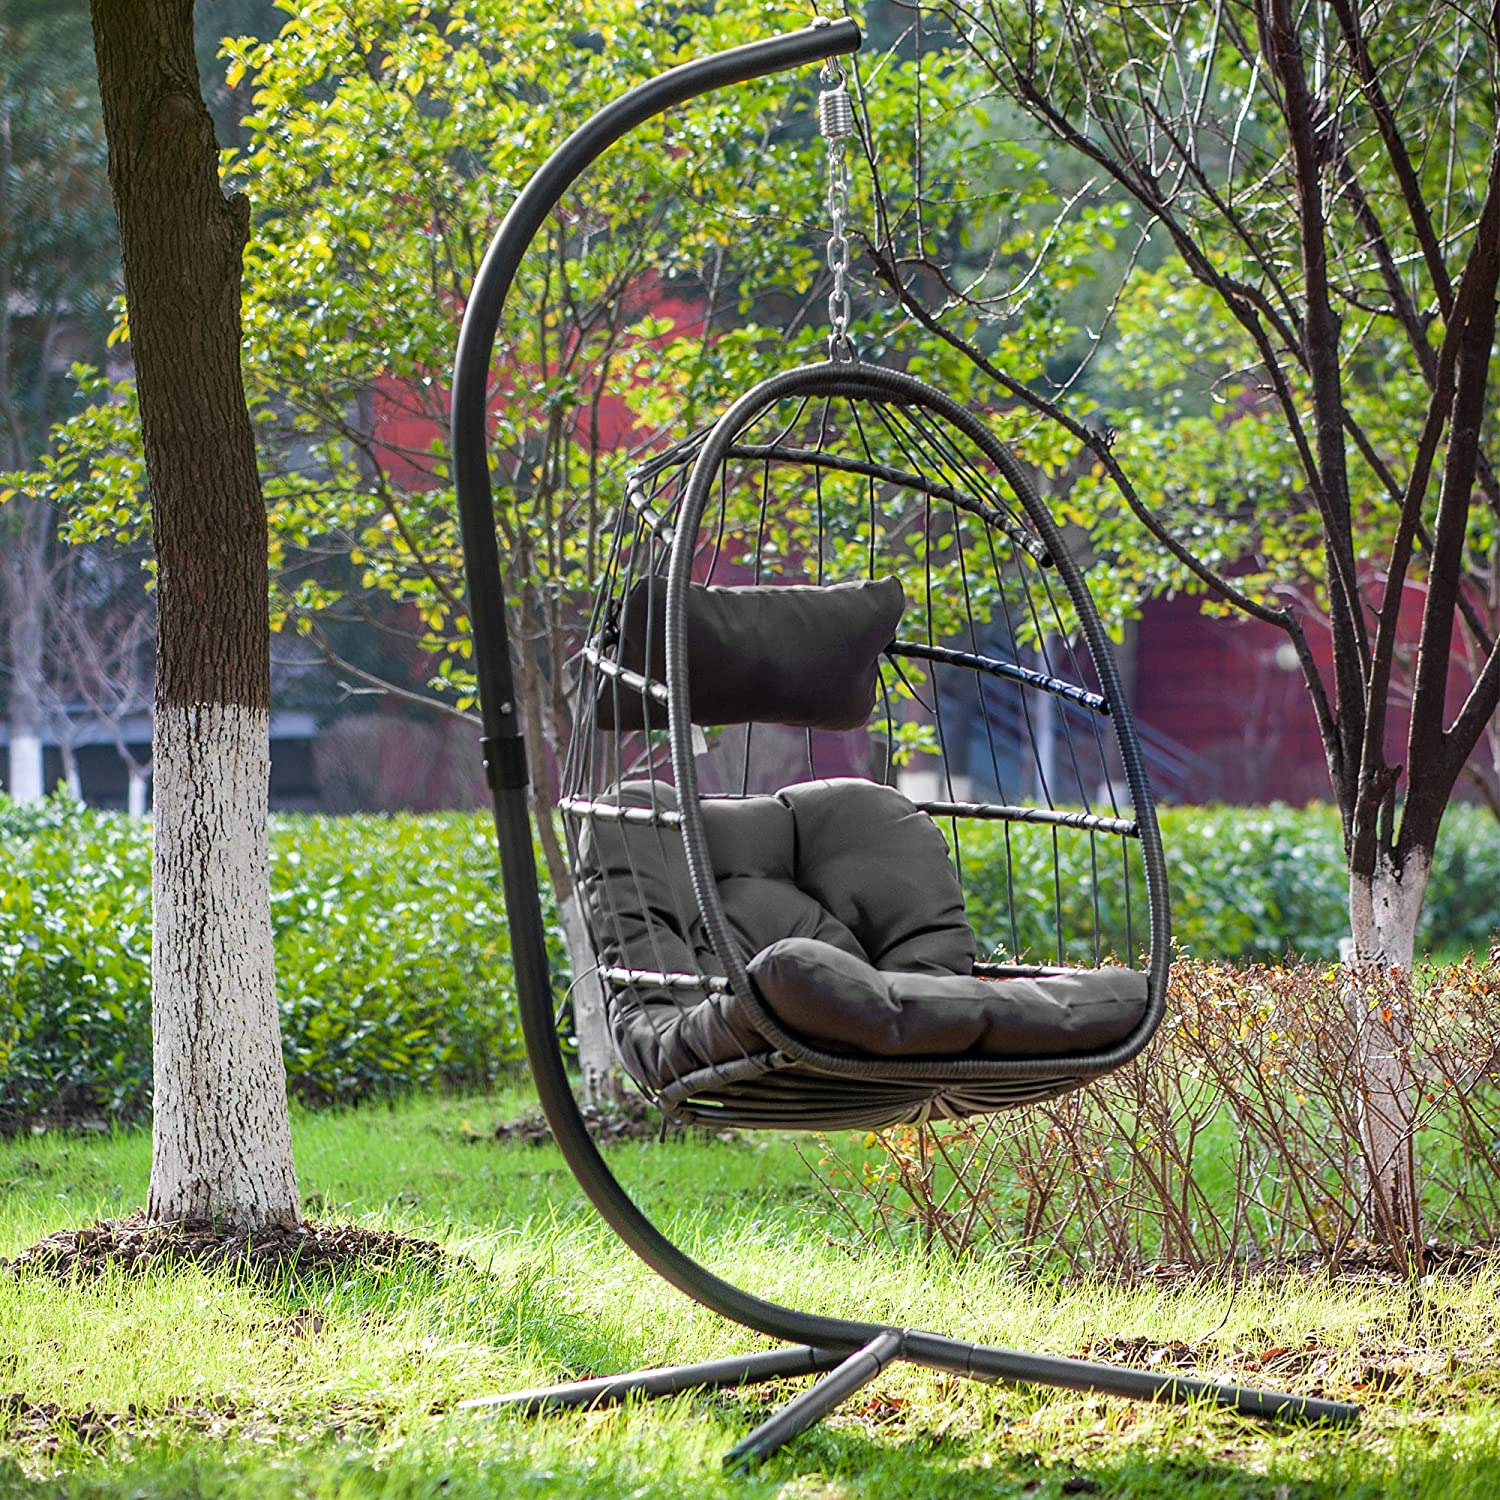 Egg Chair Aluminum Frame Swing Chair in Door Outdoor Hanging Egg Chair Patio Wicker Hanging Chair Hammock Chair with Stand